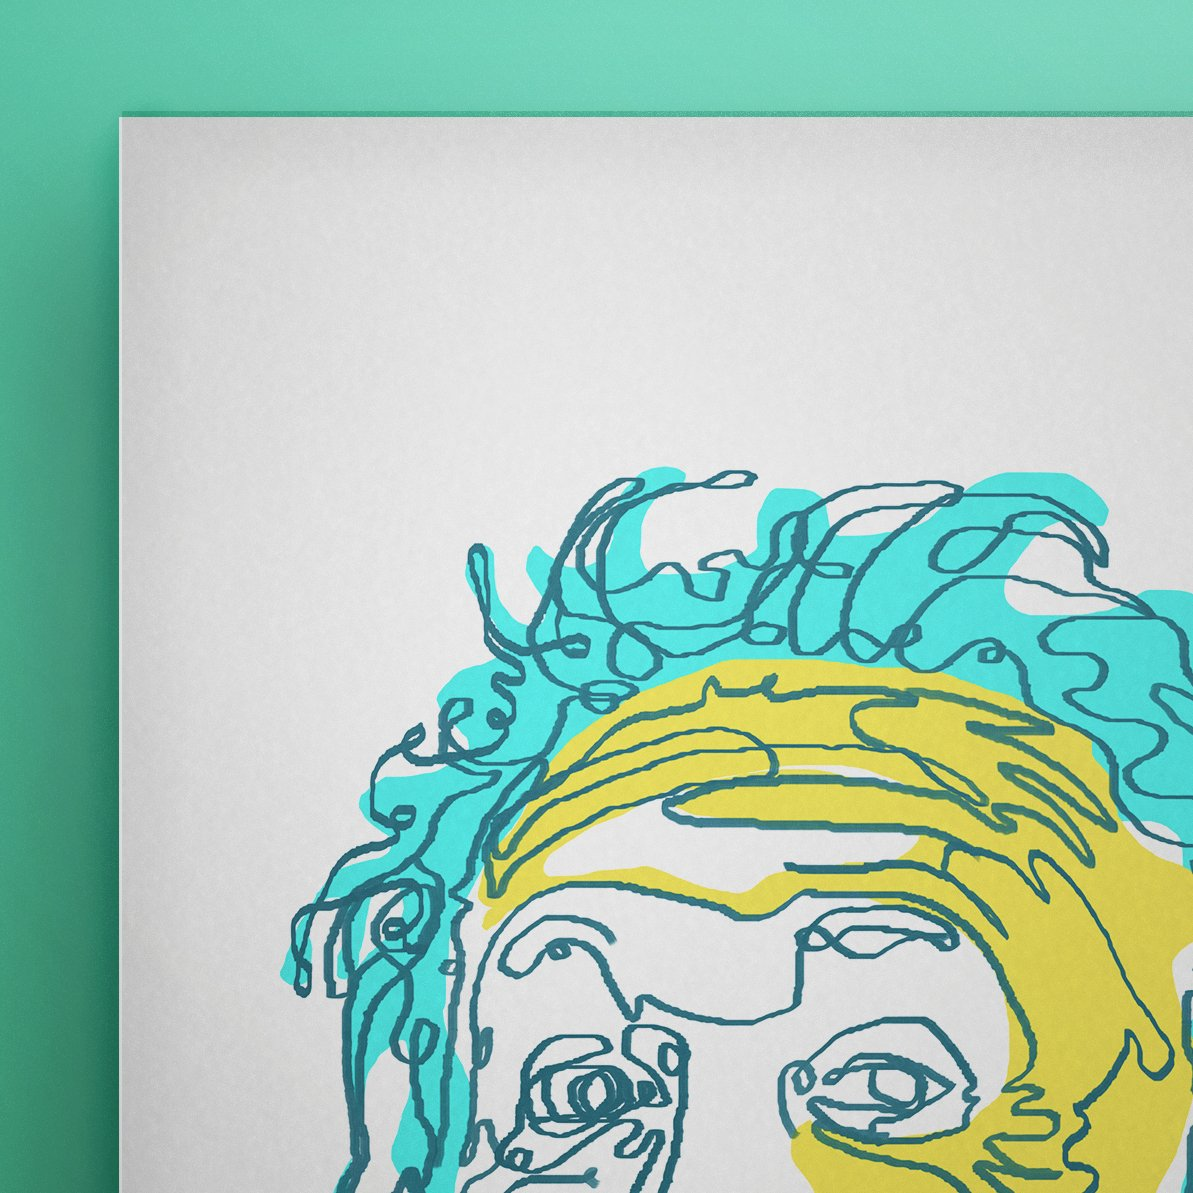 Einstein Line Art | Painting | Print | Poster | Albert Einstein Tongue Out Cartoon - EGLOOP